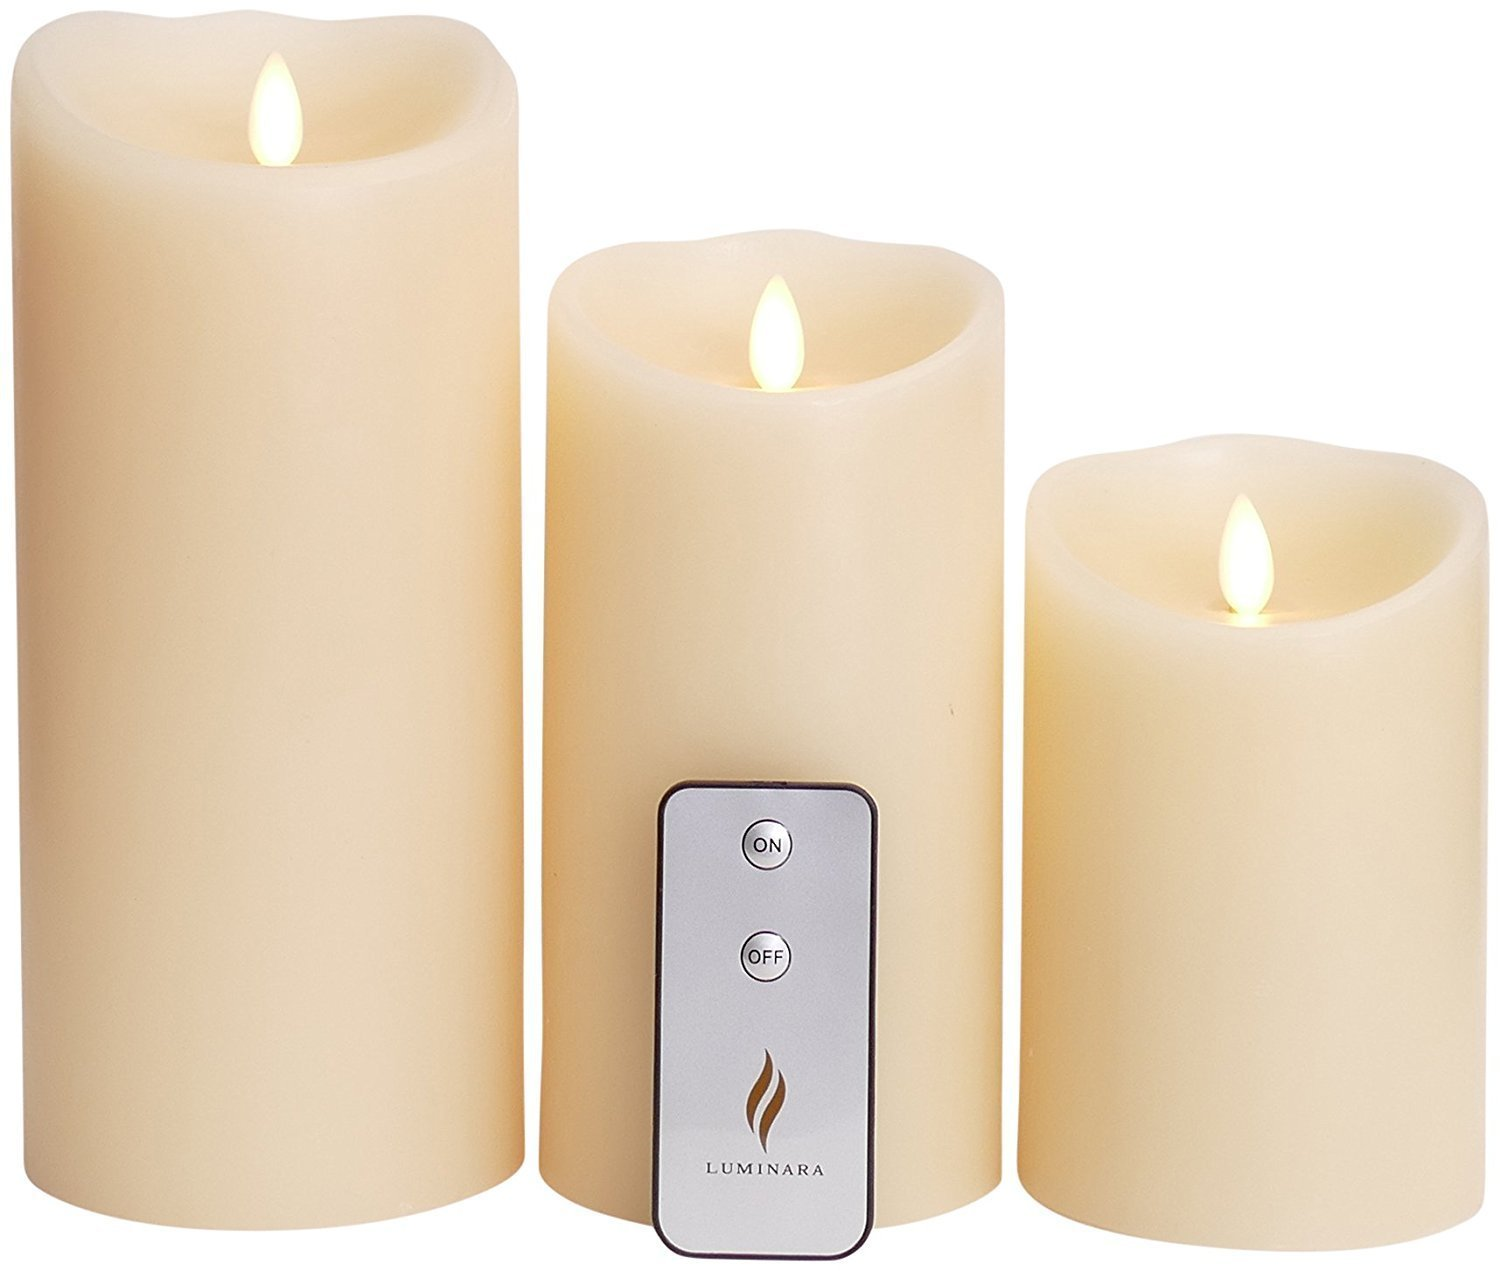 Luminara Flameless Candle with Remote & Timer Set of 3pcs,3.5-Inch by 5/7/9-Inch Pillar Candle with Moving Wick,Ivory